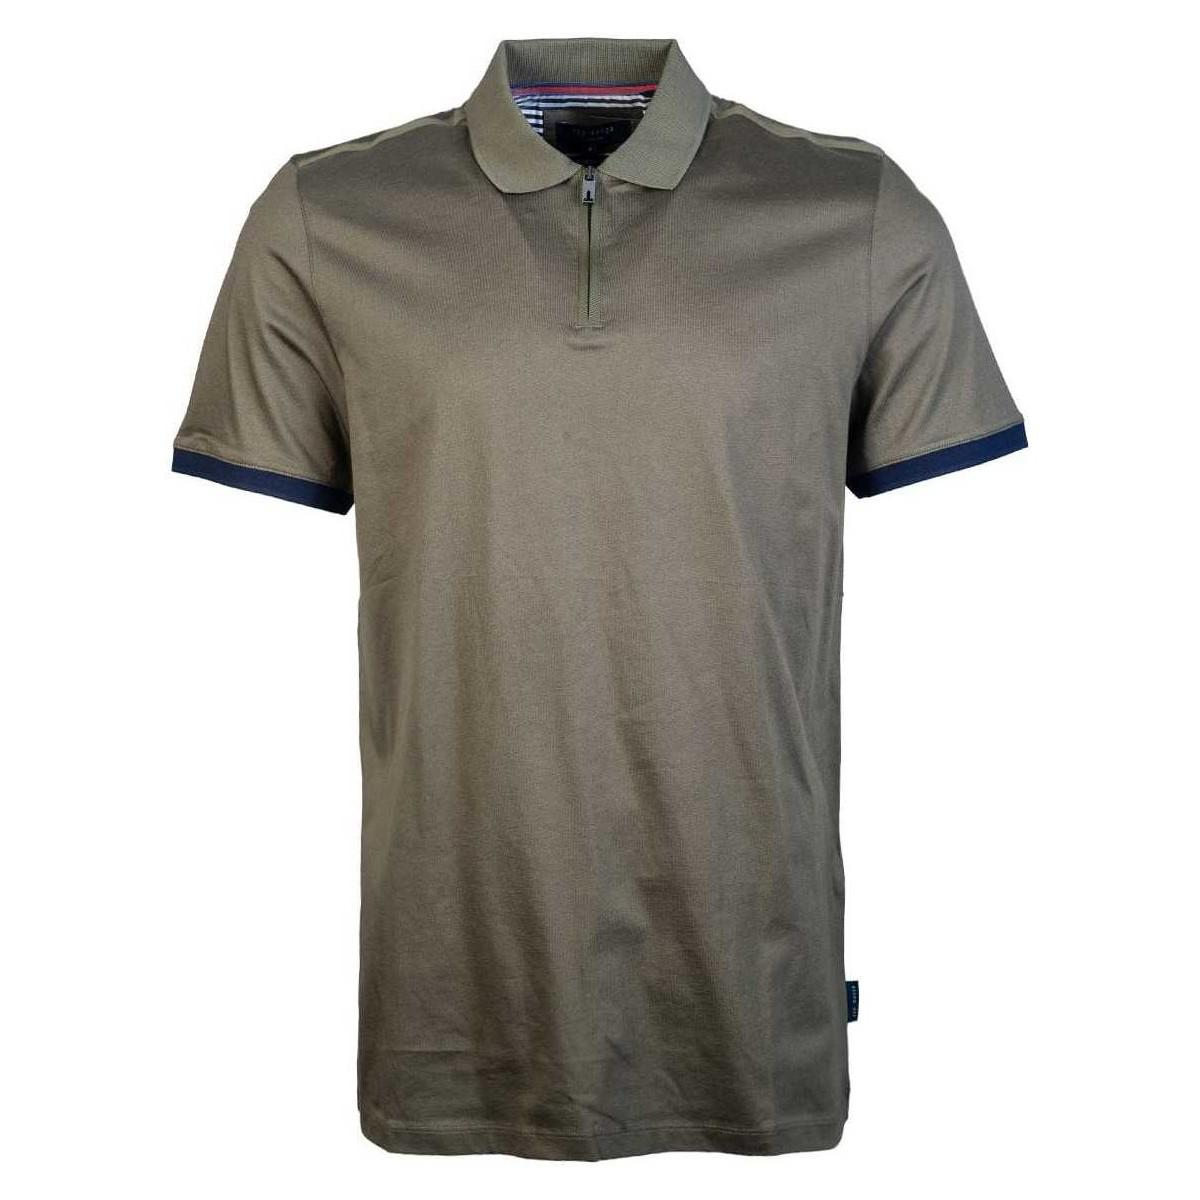 97c3d113e26a0 Ted Baker Polo Shirt Tc8m   Gba7   Snika Men s Polo Shirt In Green ...